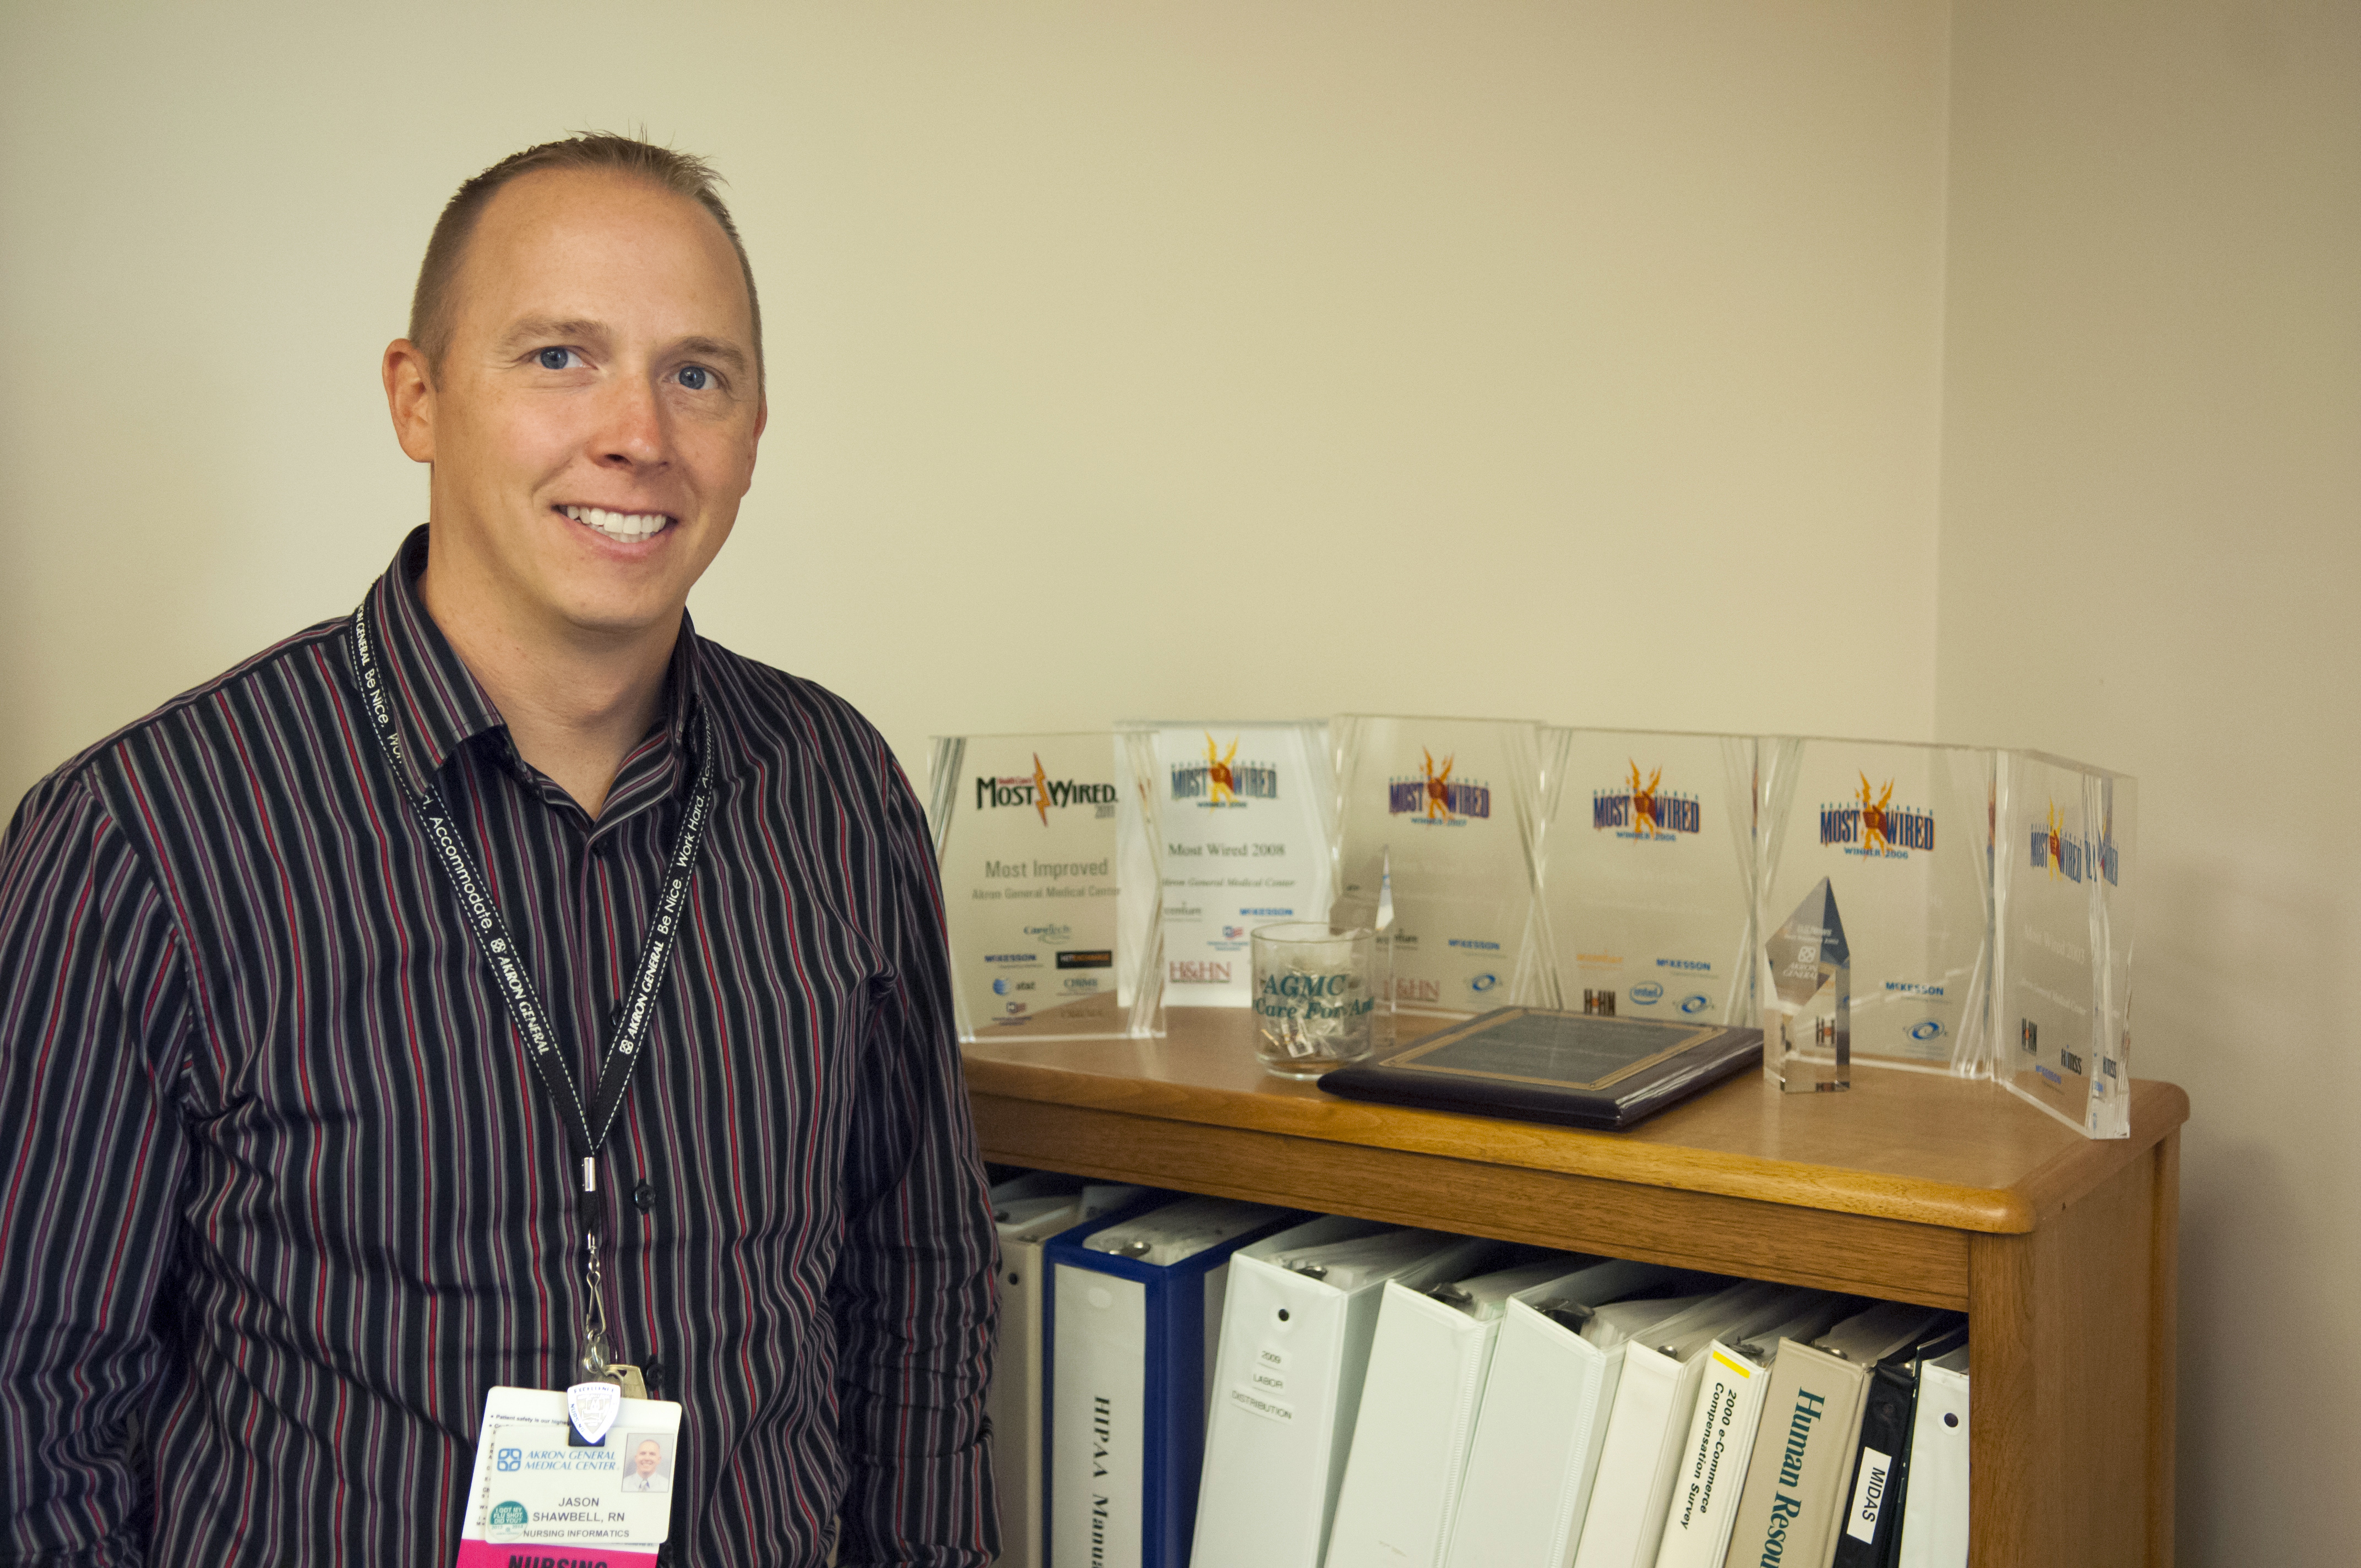 Jason Shawbell, M.S. 2013, Systems Administrator, Nursing Informatics, Akron General Medical Center